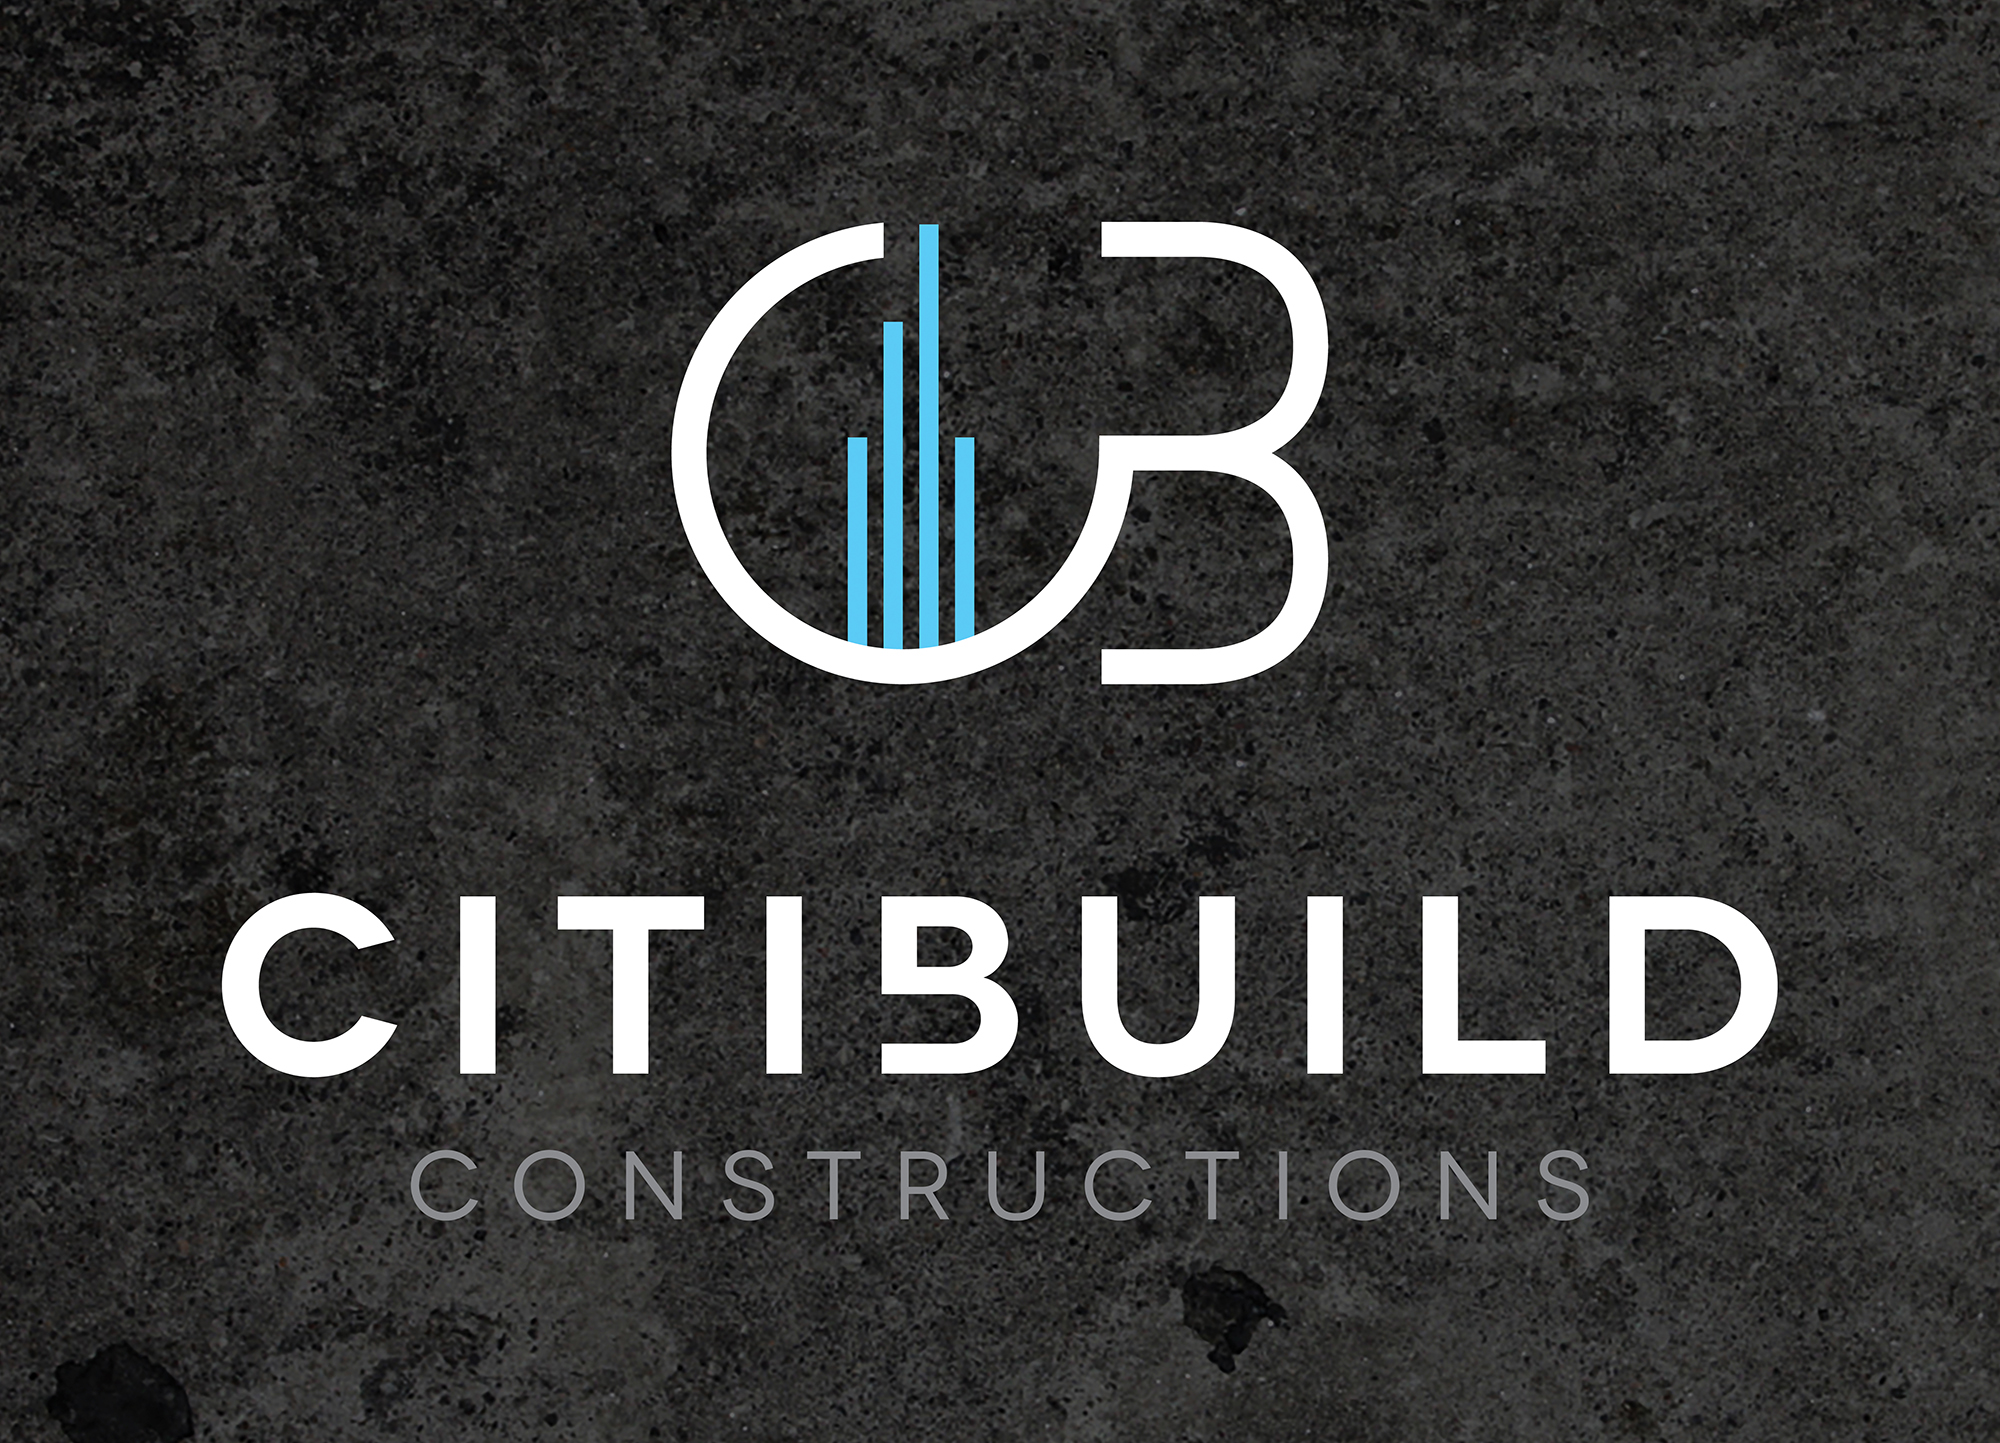 CITIBUILD CONSTRUCTIONS